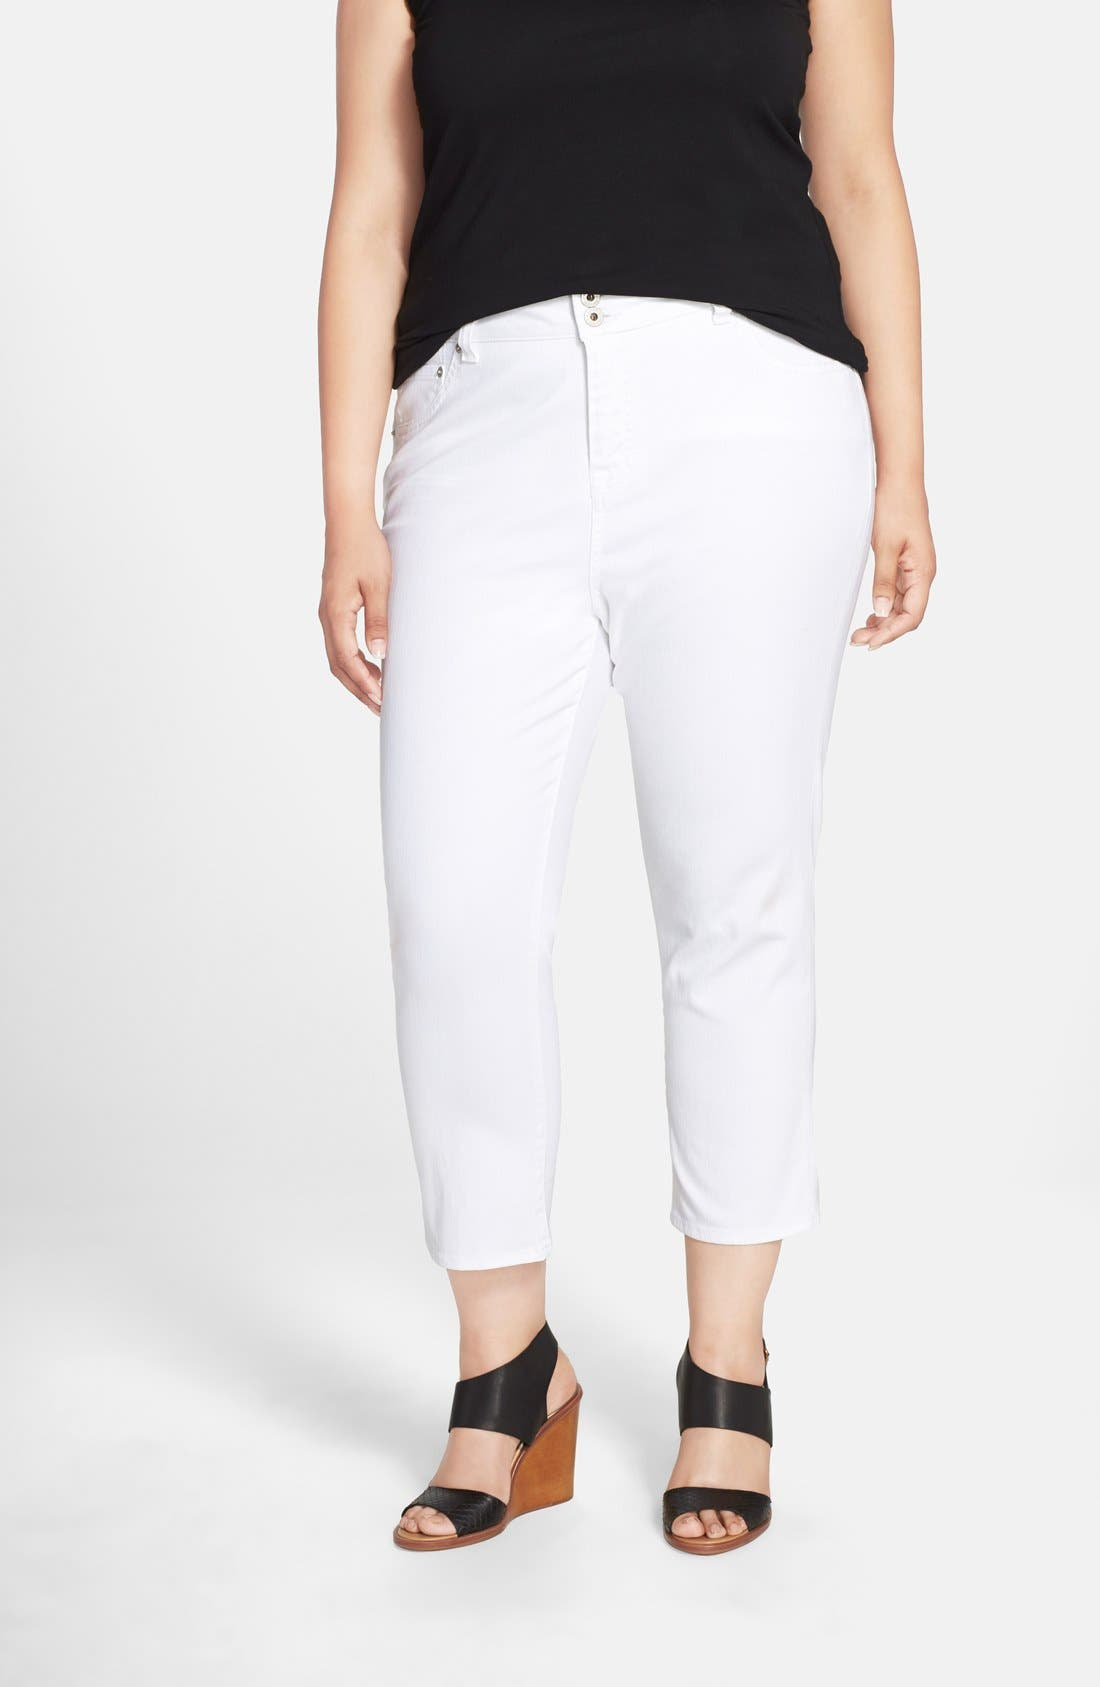 LUCKY BRAND, 'Emma' Stretch Crop Jeans, Main thumbnail 1, color, 110